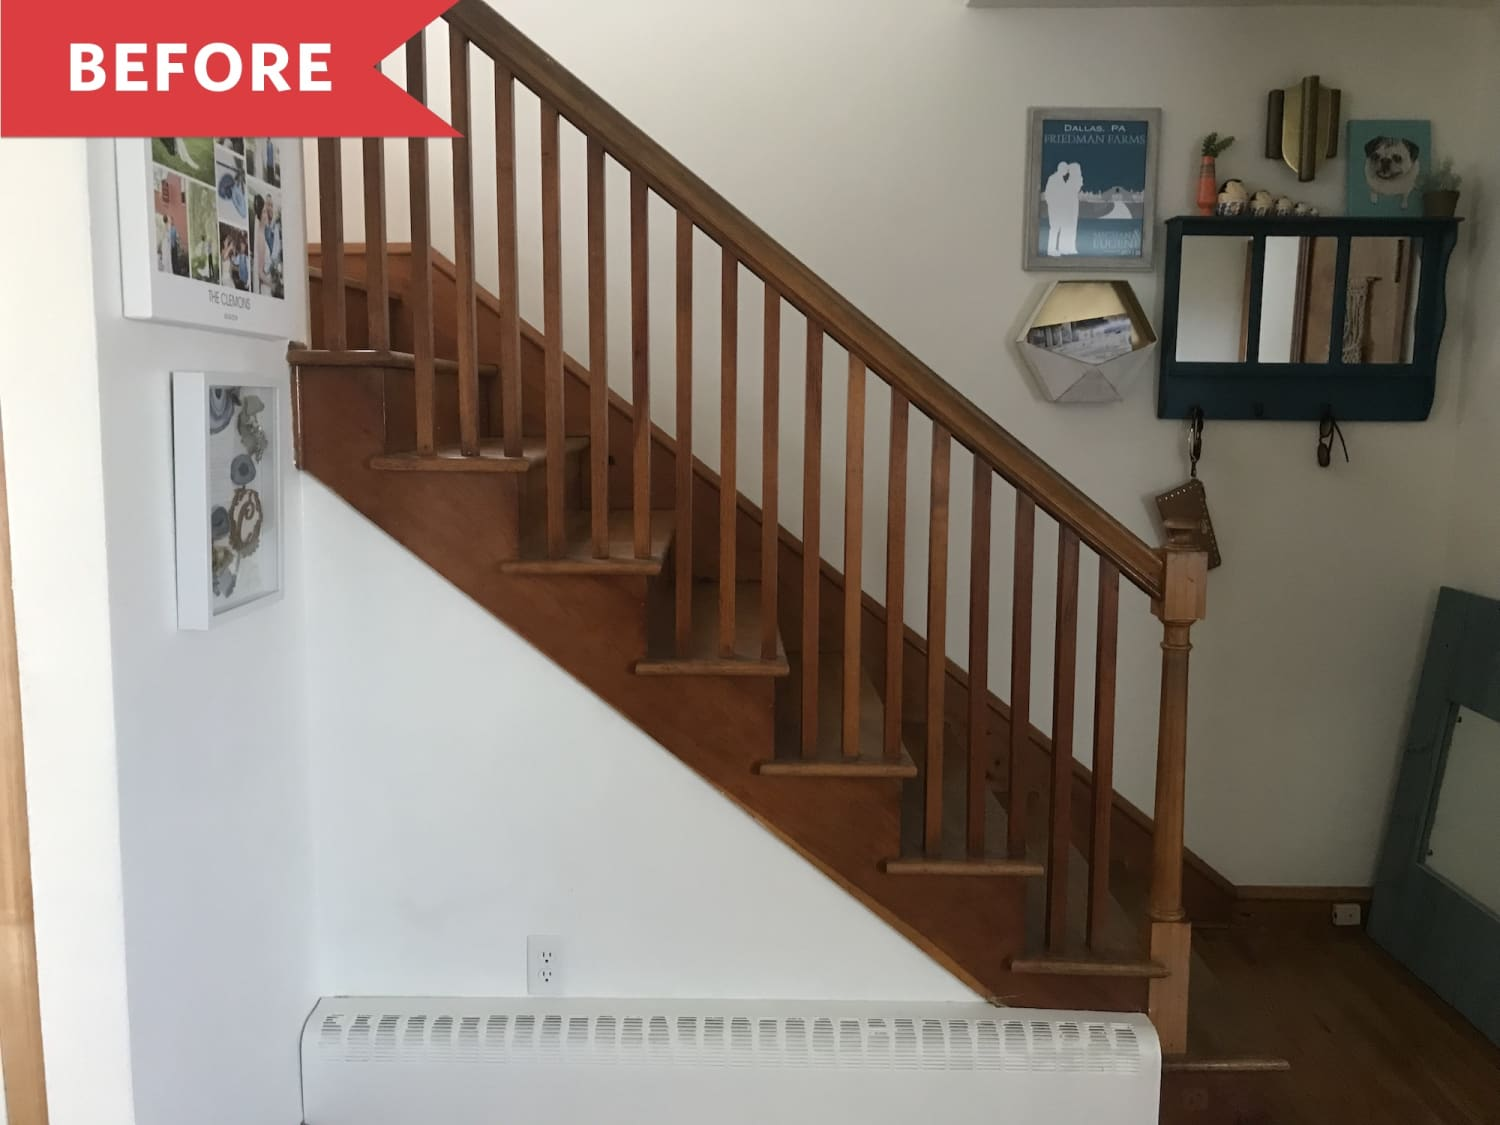 Before and After: This Stair Paint Job Will Make You Never Want to Climb a Plain Staircase Again